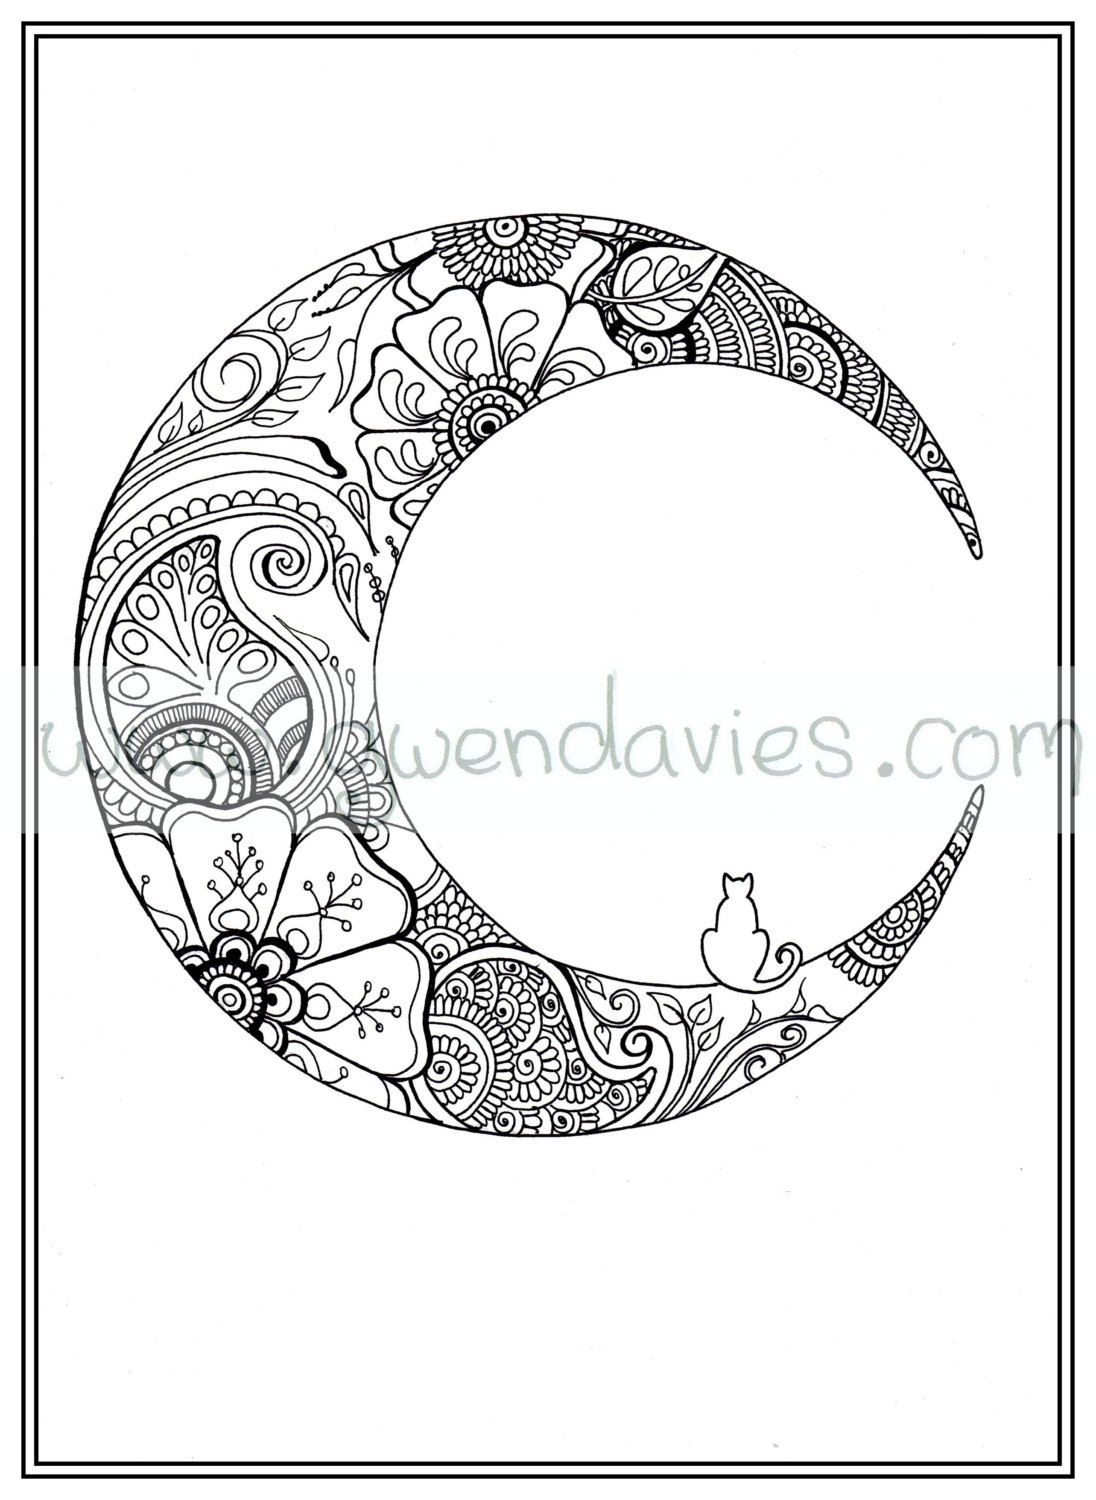 Adult colouring in PDF download moon cat calming